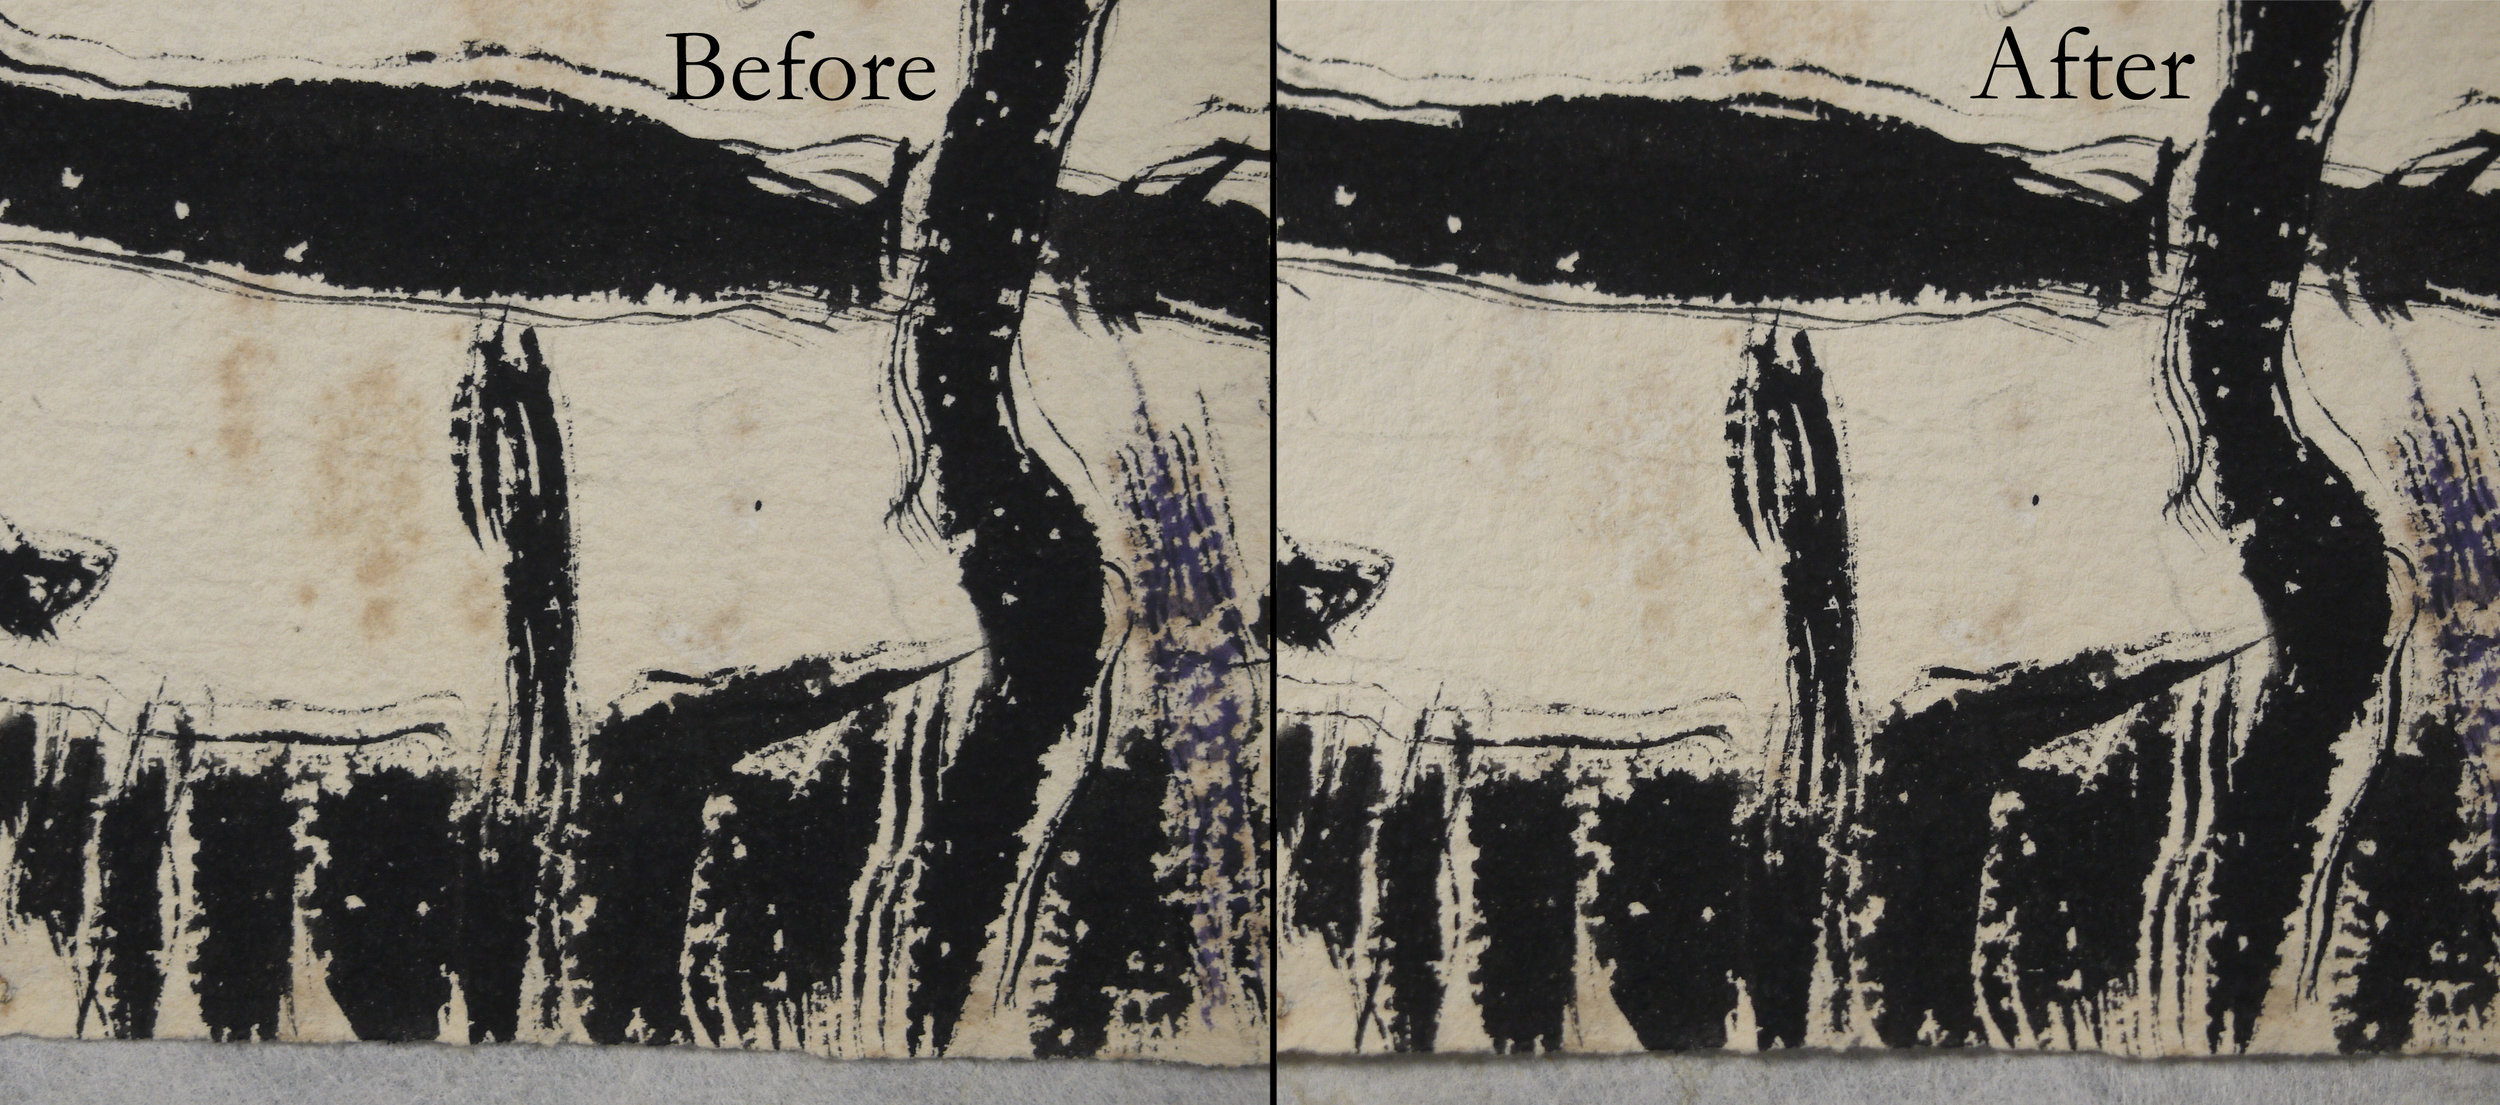 Big Moose , David Milne; staining before and after conservation treatment.